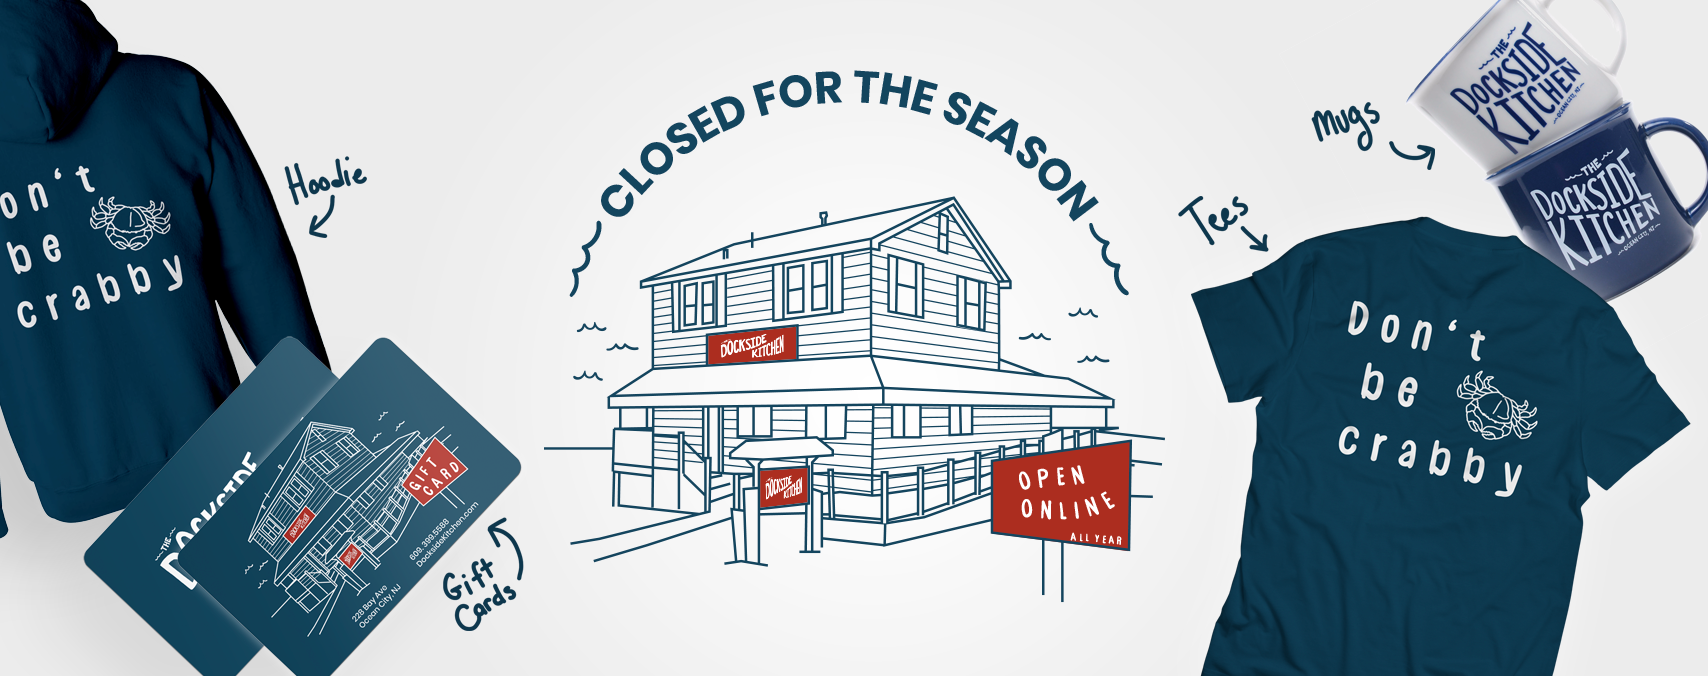 Dockside Kitchen Closed for 2018 Season Image